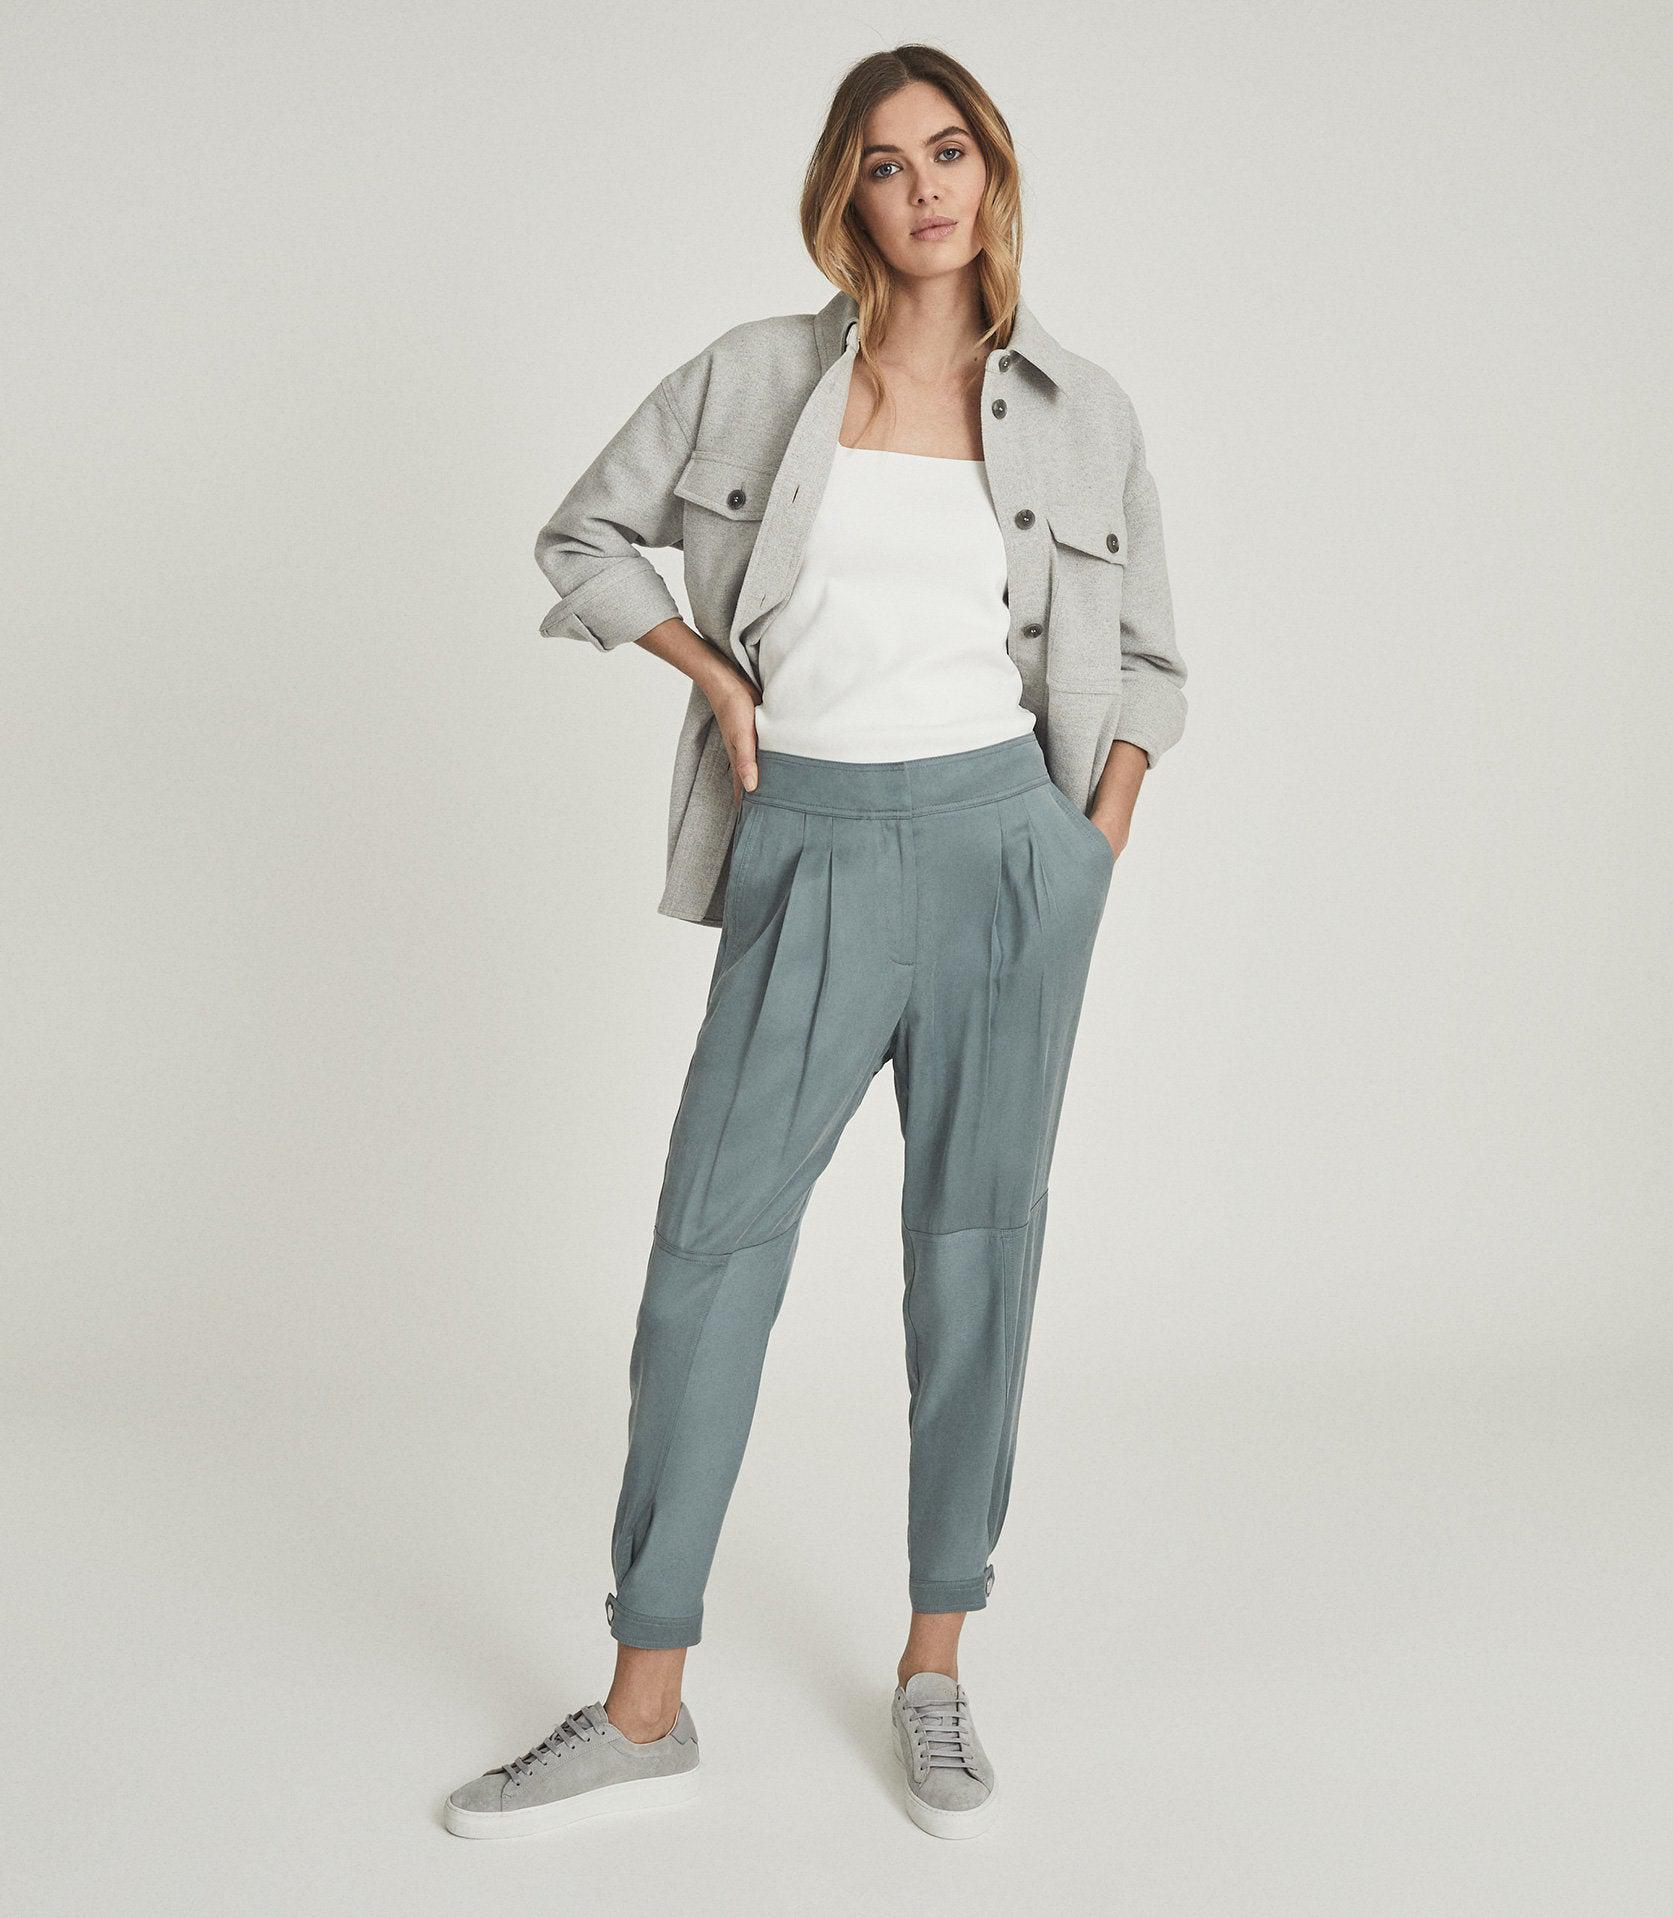 MARLOW - PLEAT FRONT TAPERED PANTS